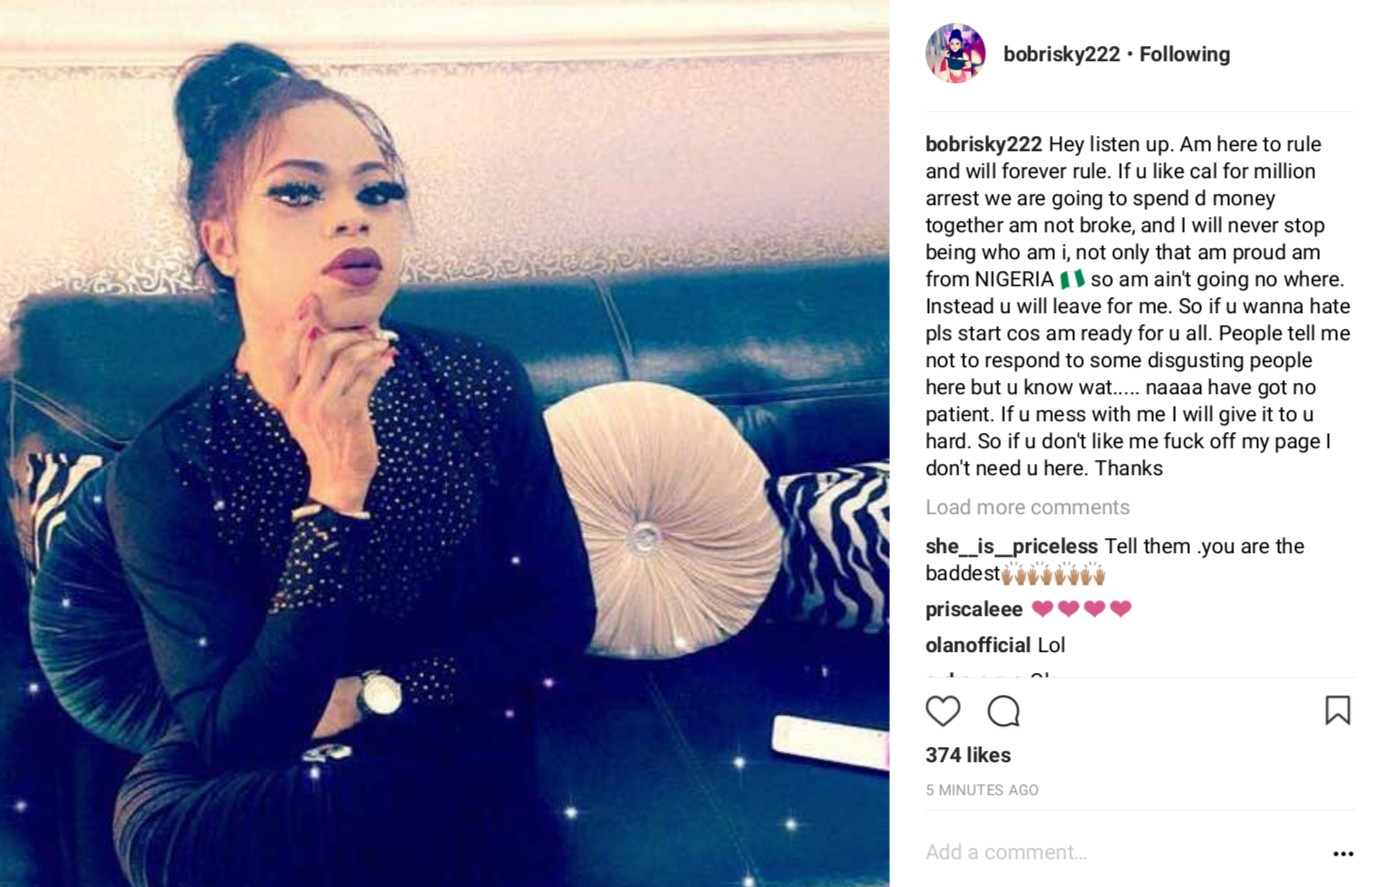 Bobrisky Warns He Is Not Afraid Of The Police And will Continue To Trend (2)